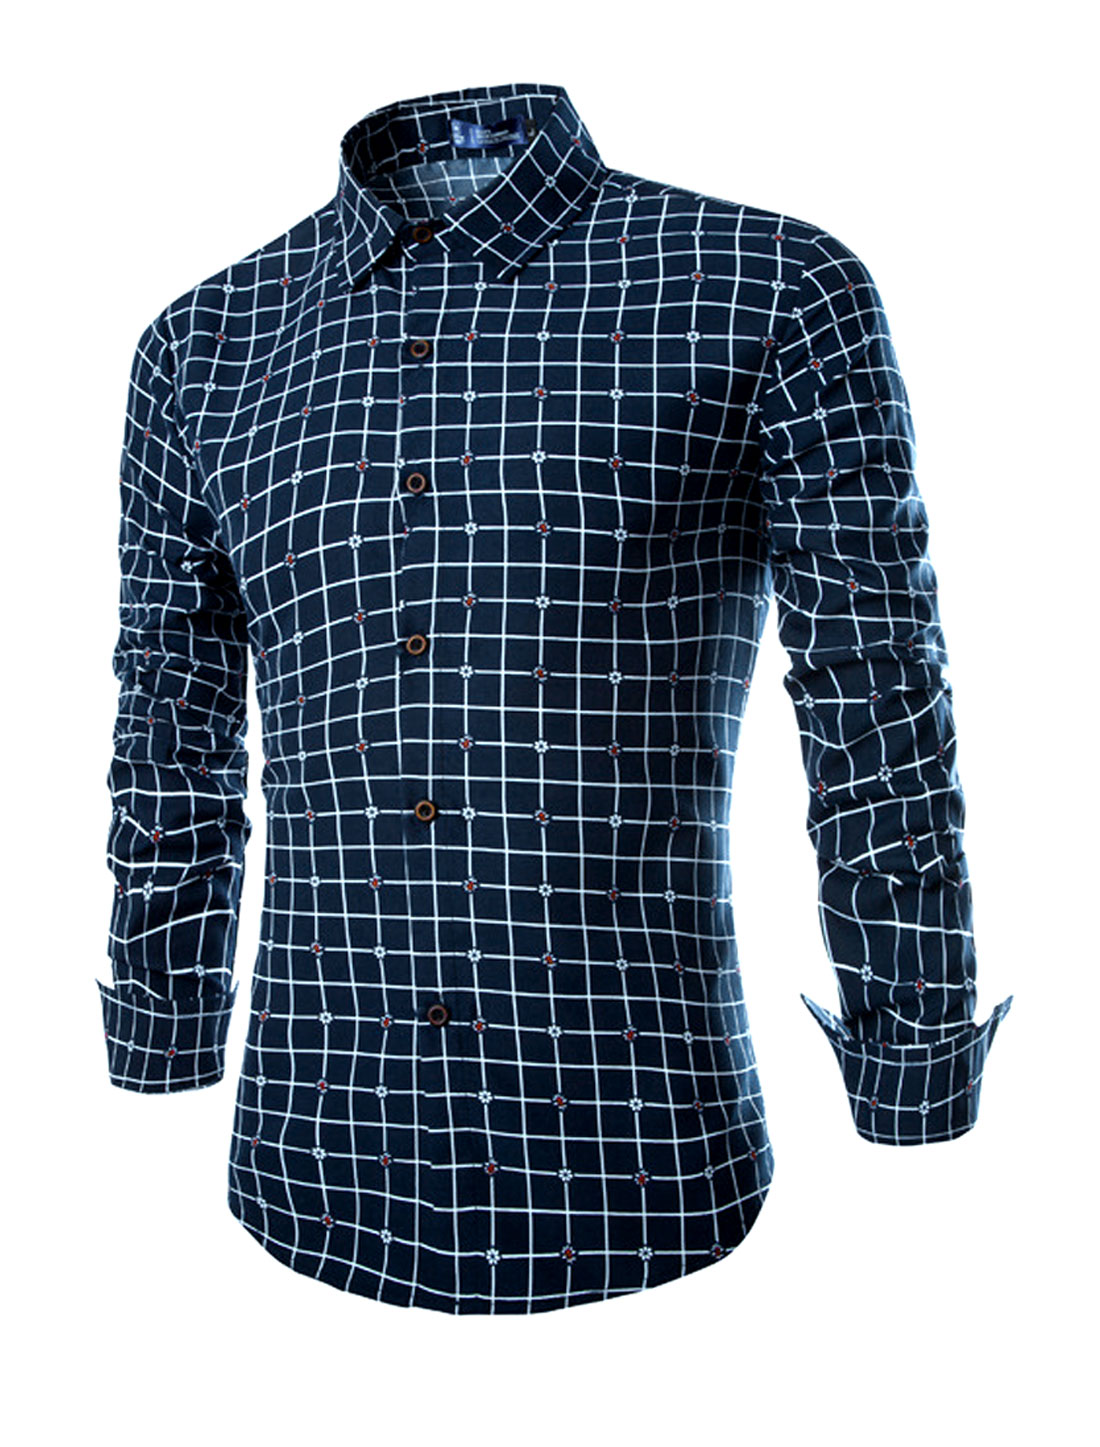 Man Point Collar Long Sleeves Checks Button Down Shirts Navy Blue M